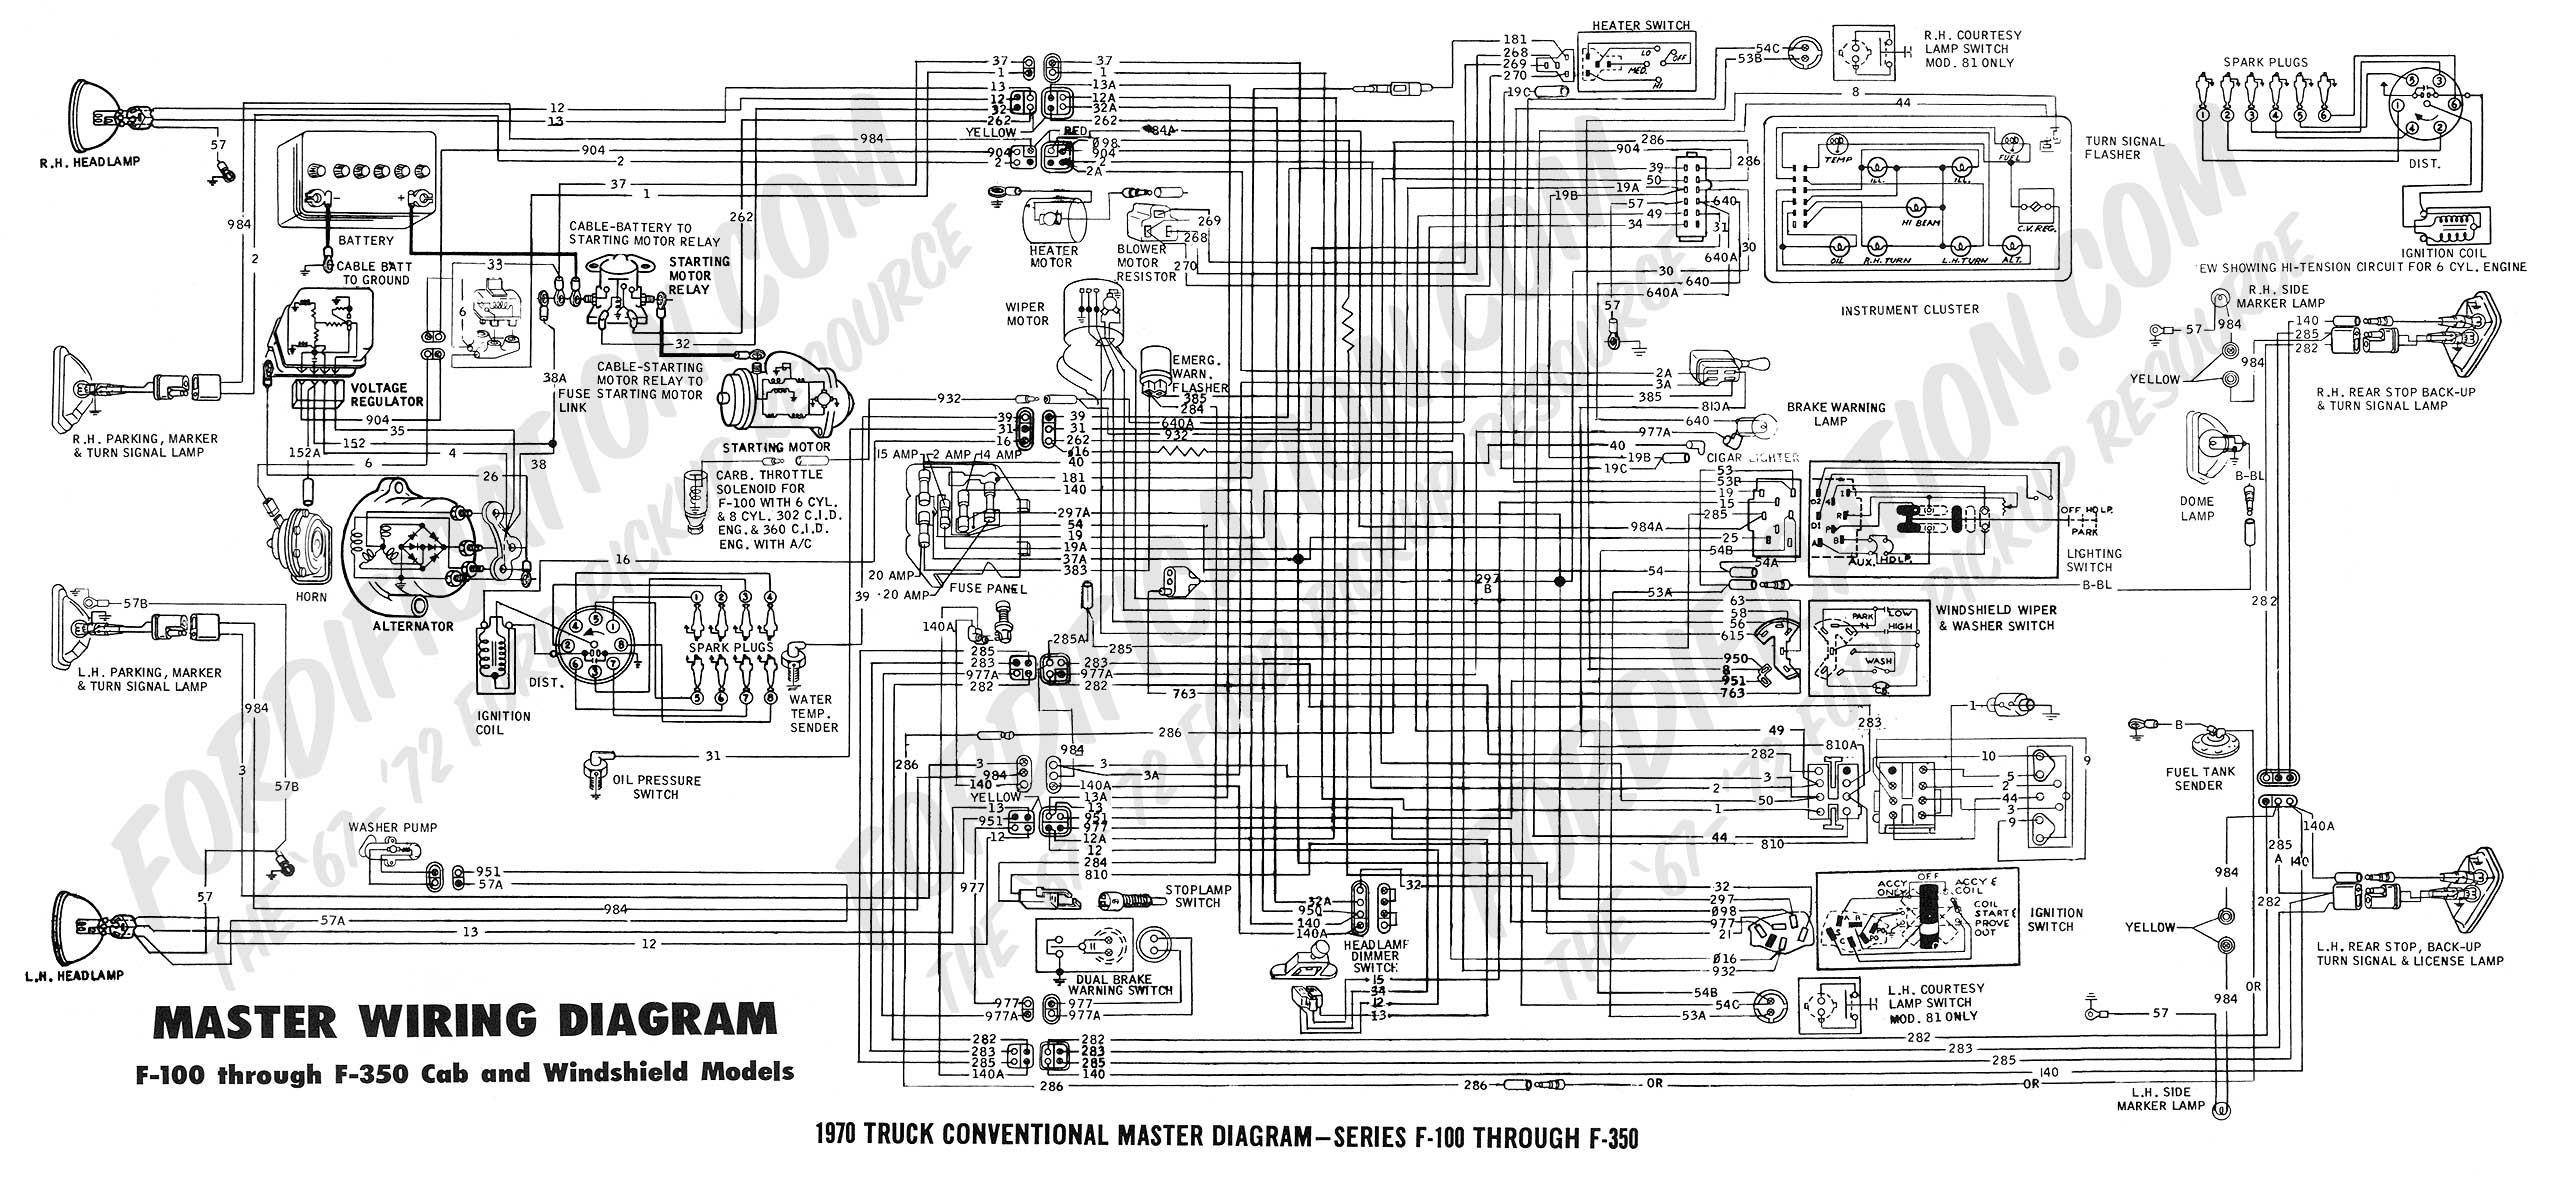 83 suburban wiring diagram php 1968 ford wiring diagrams 1968 wiring diagrams